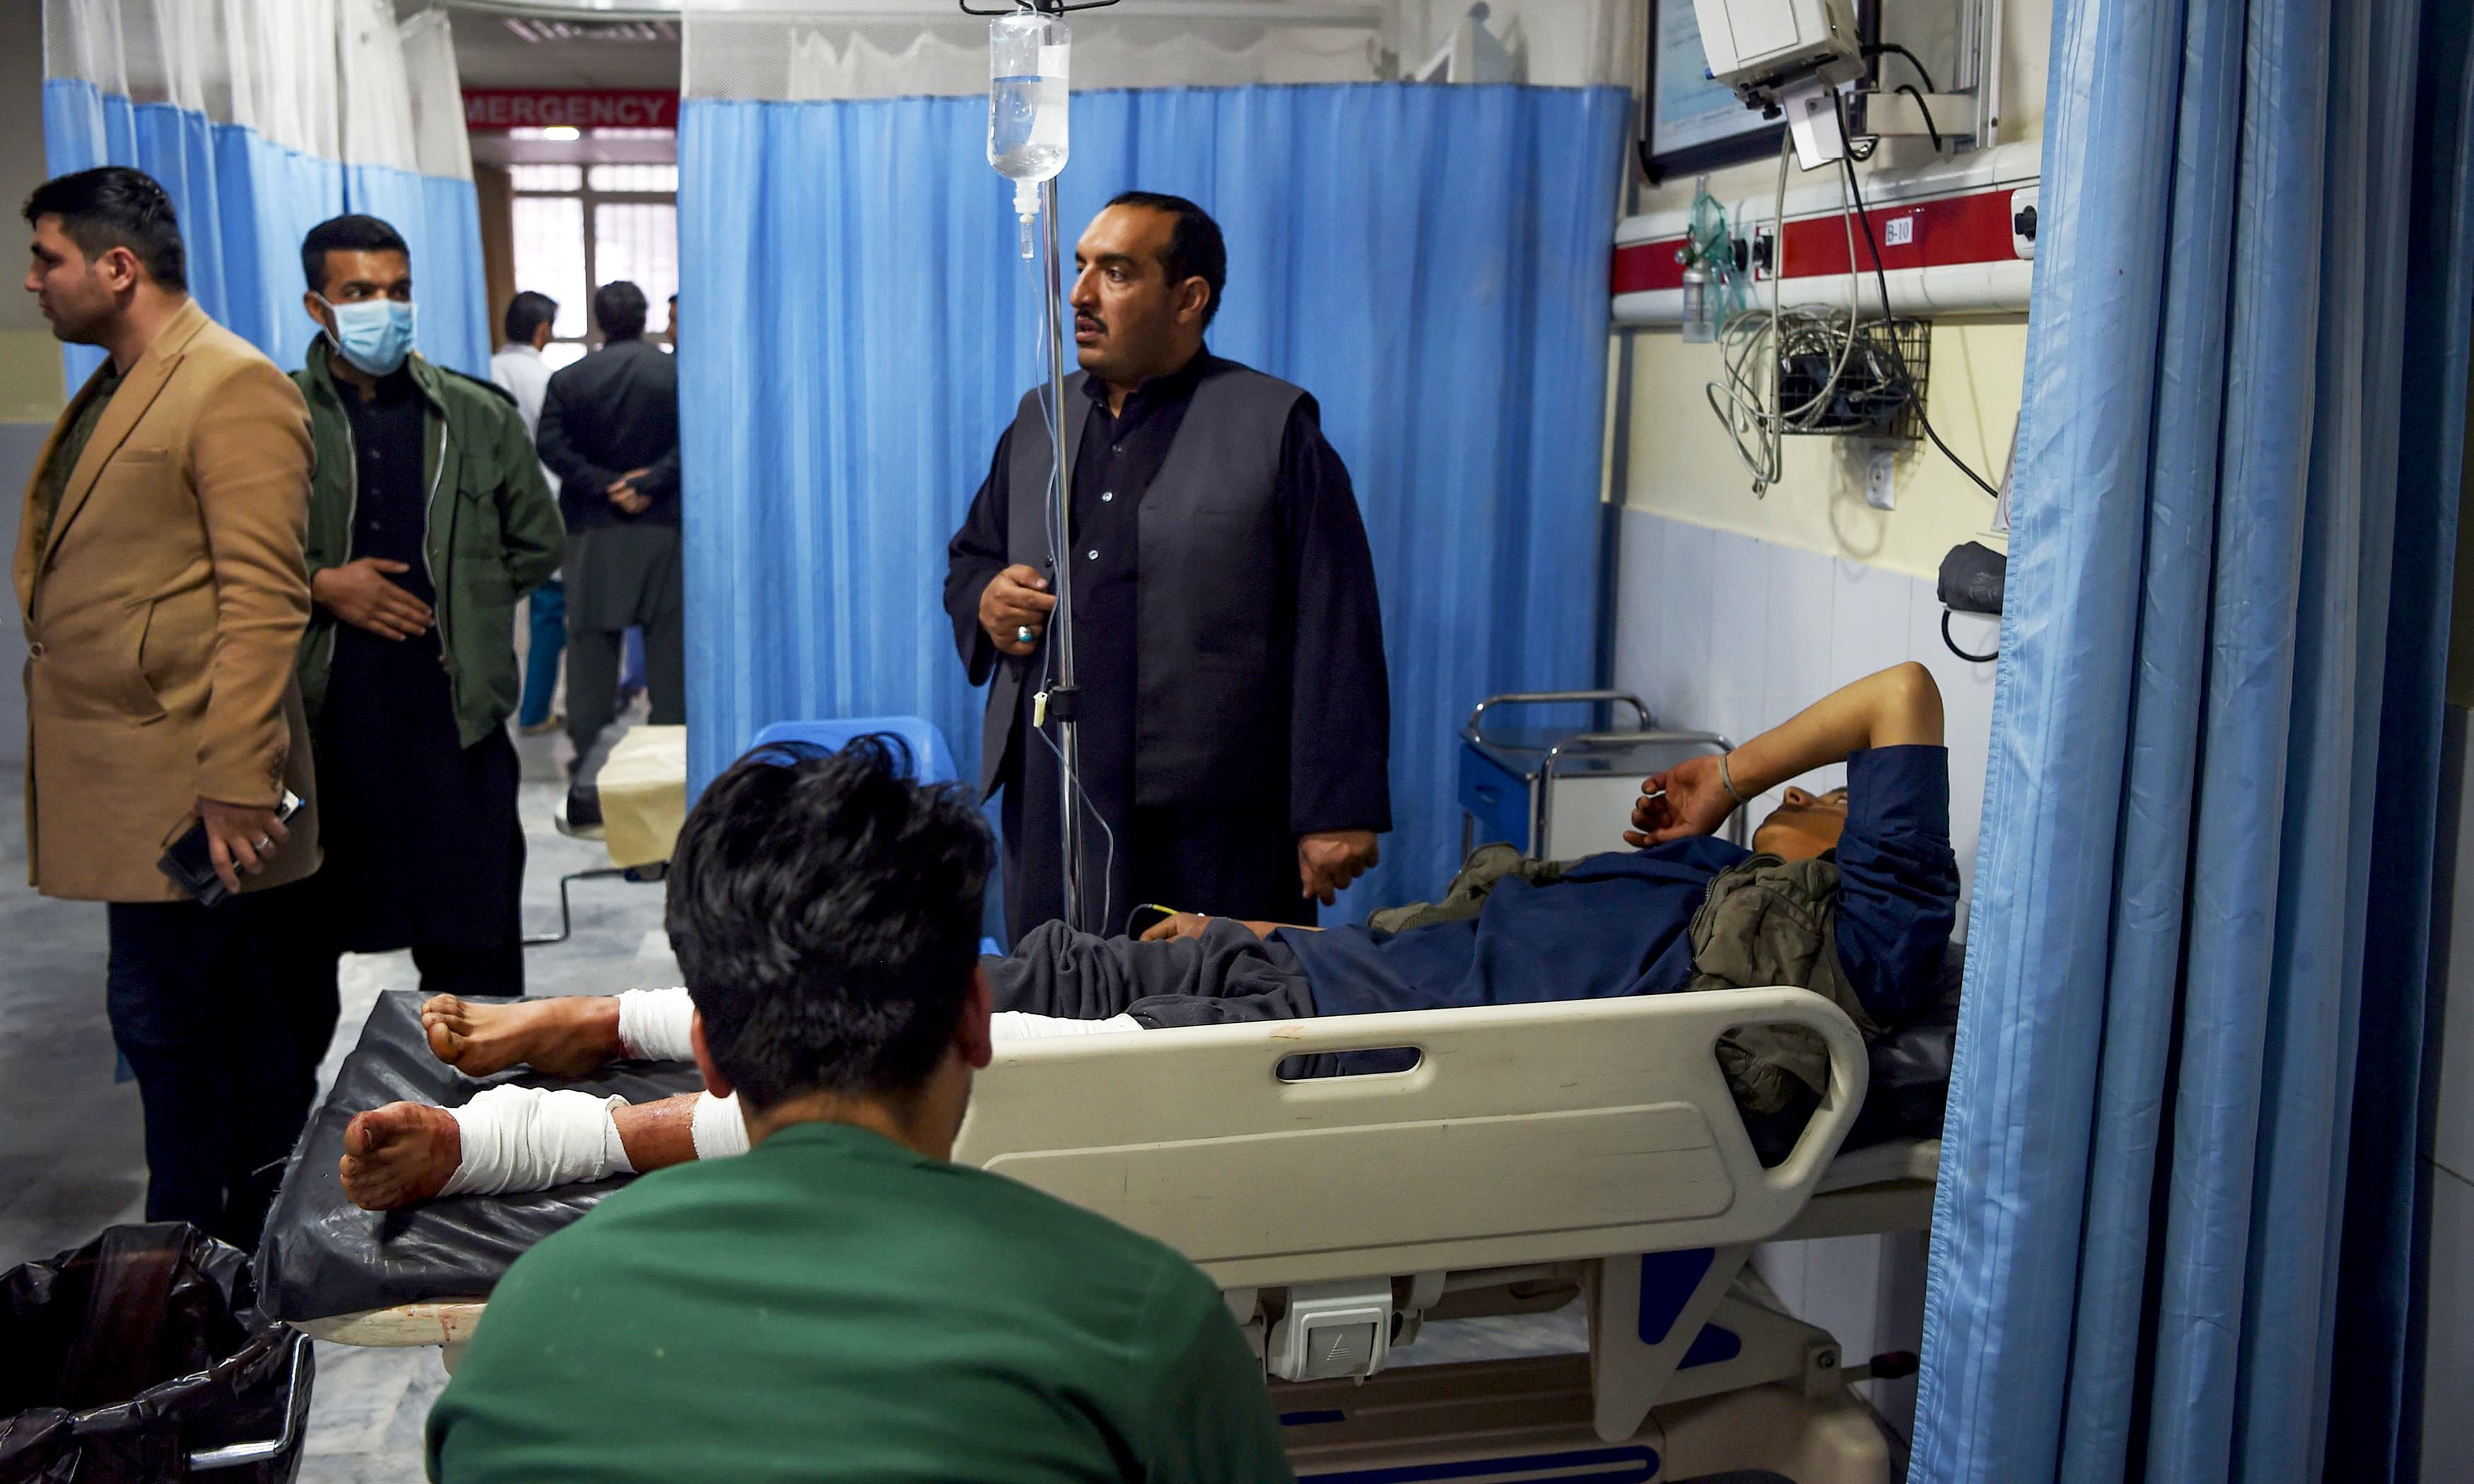 Explosions rock Kabul govt compound in ongoing attack, casualties feared